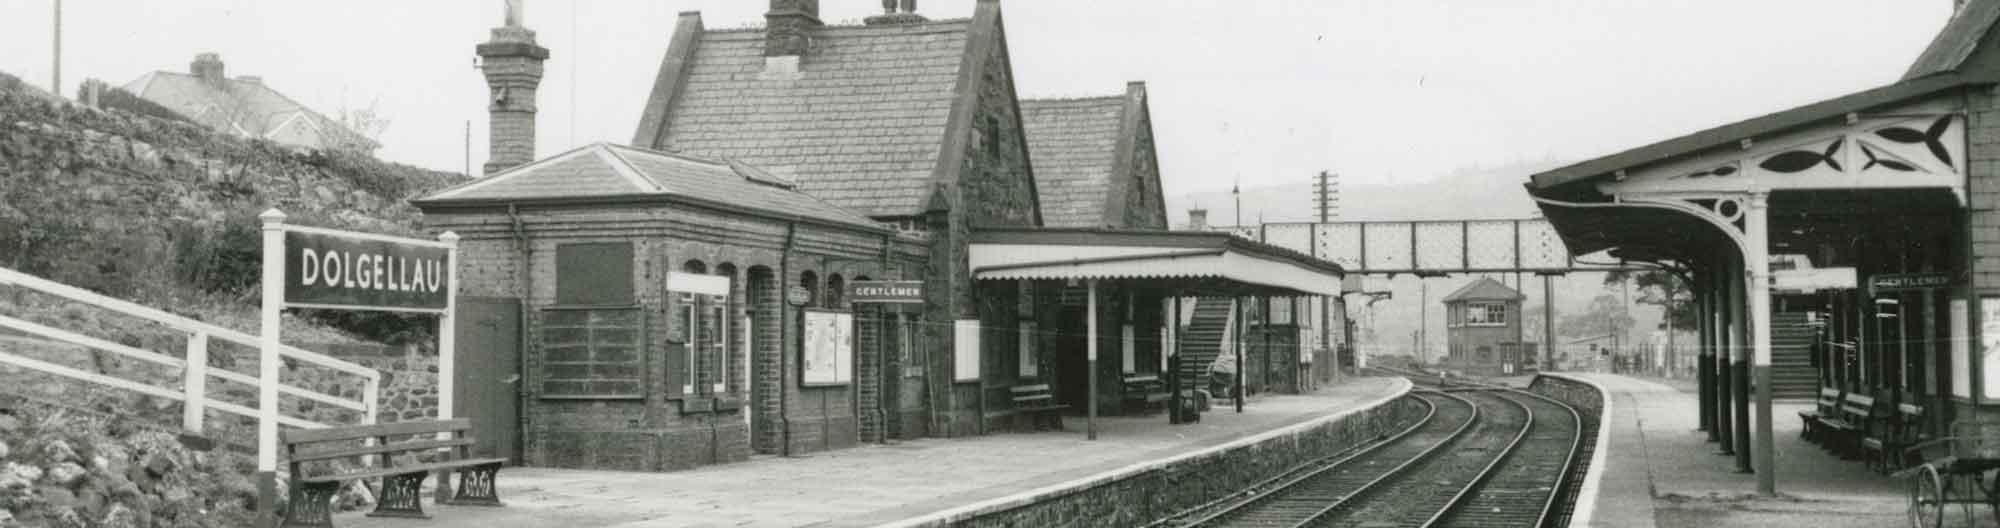 Dolgellau Station in the Early 1960s